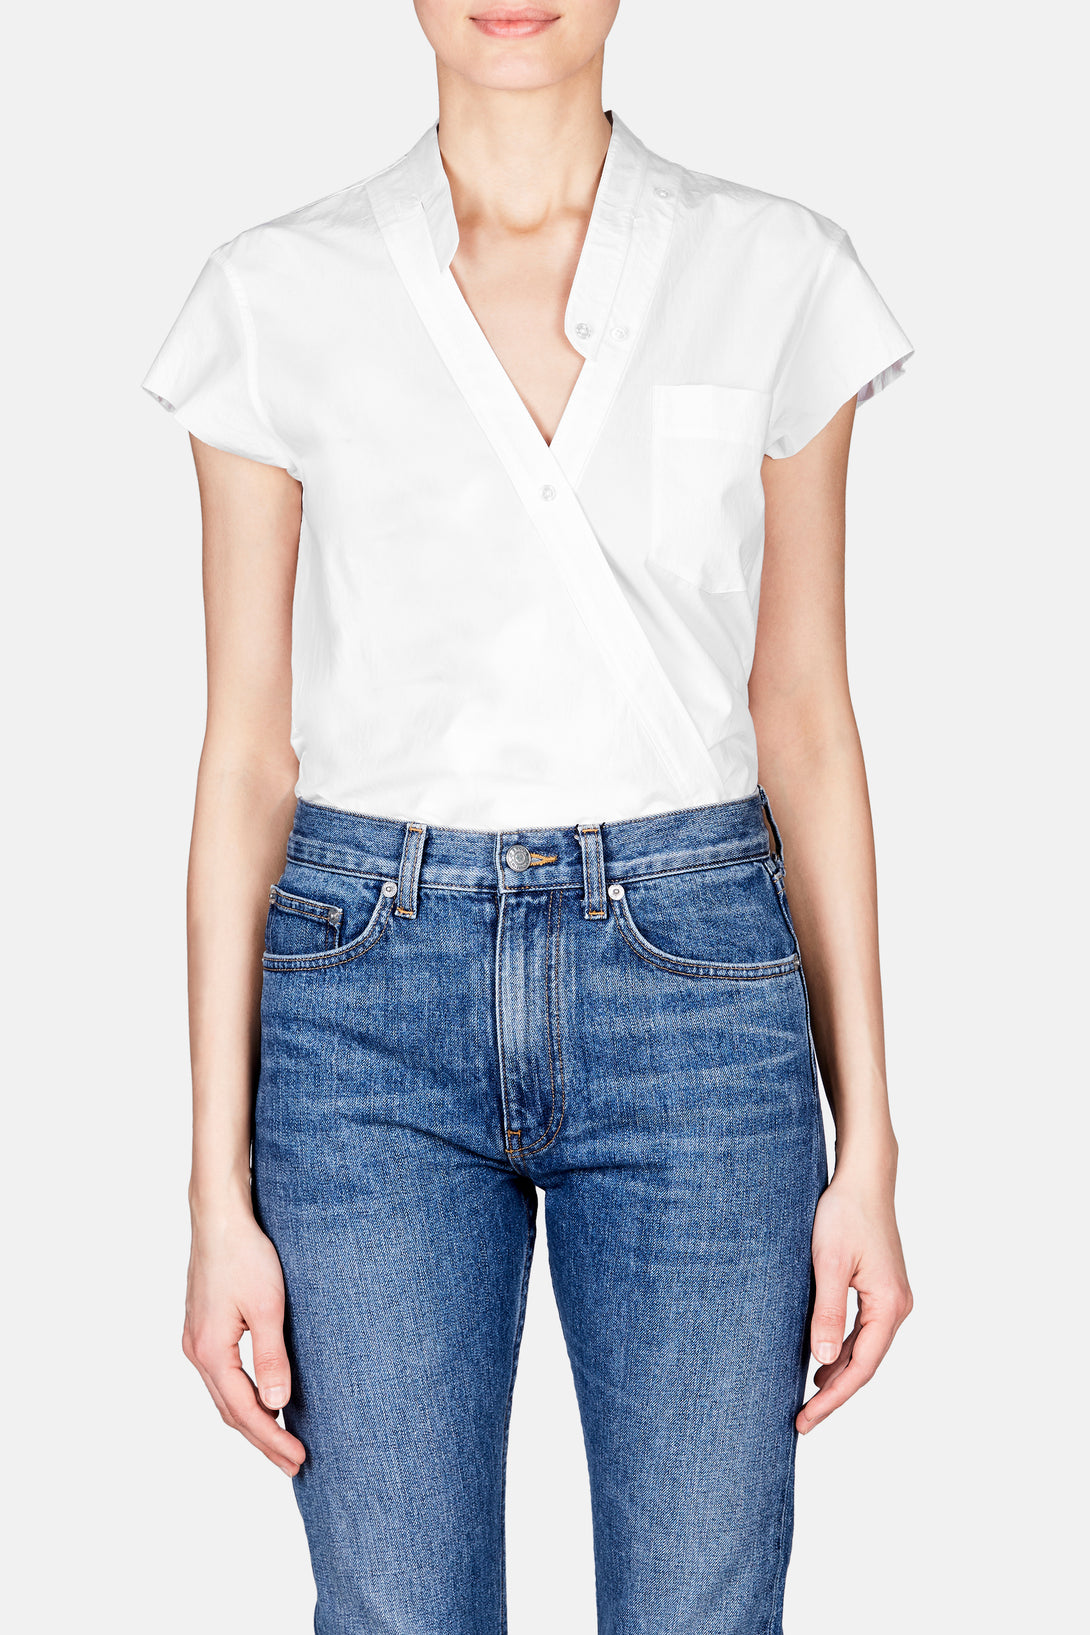 Cross Front Short Sleeve Poplin Bodysuit - White